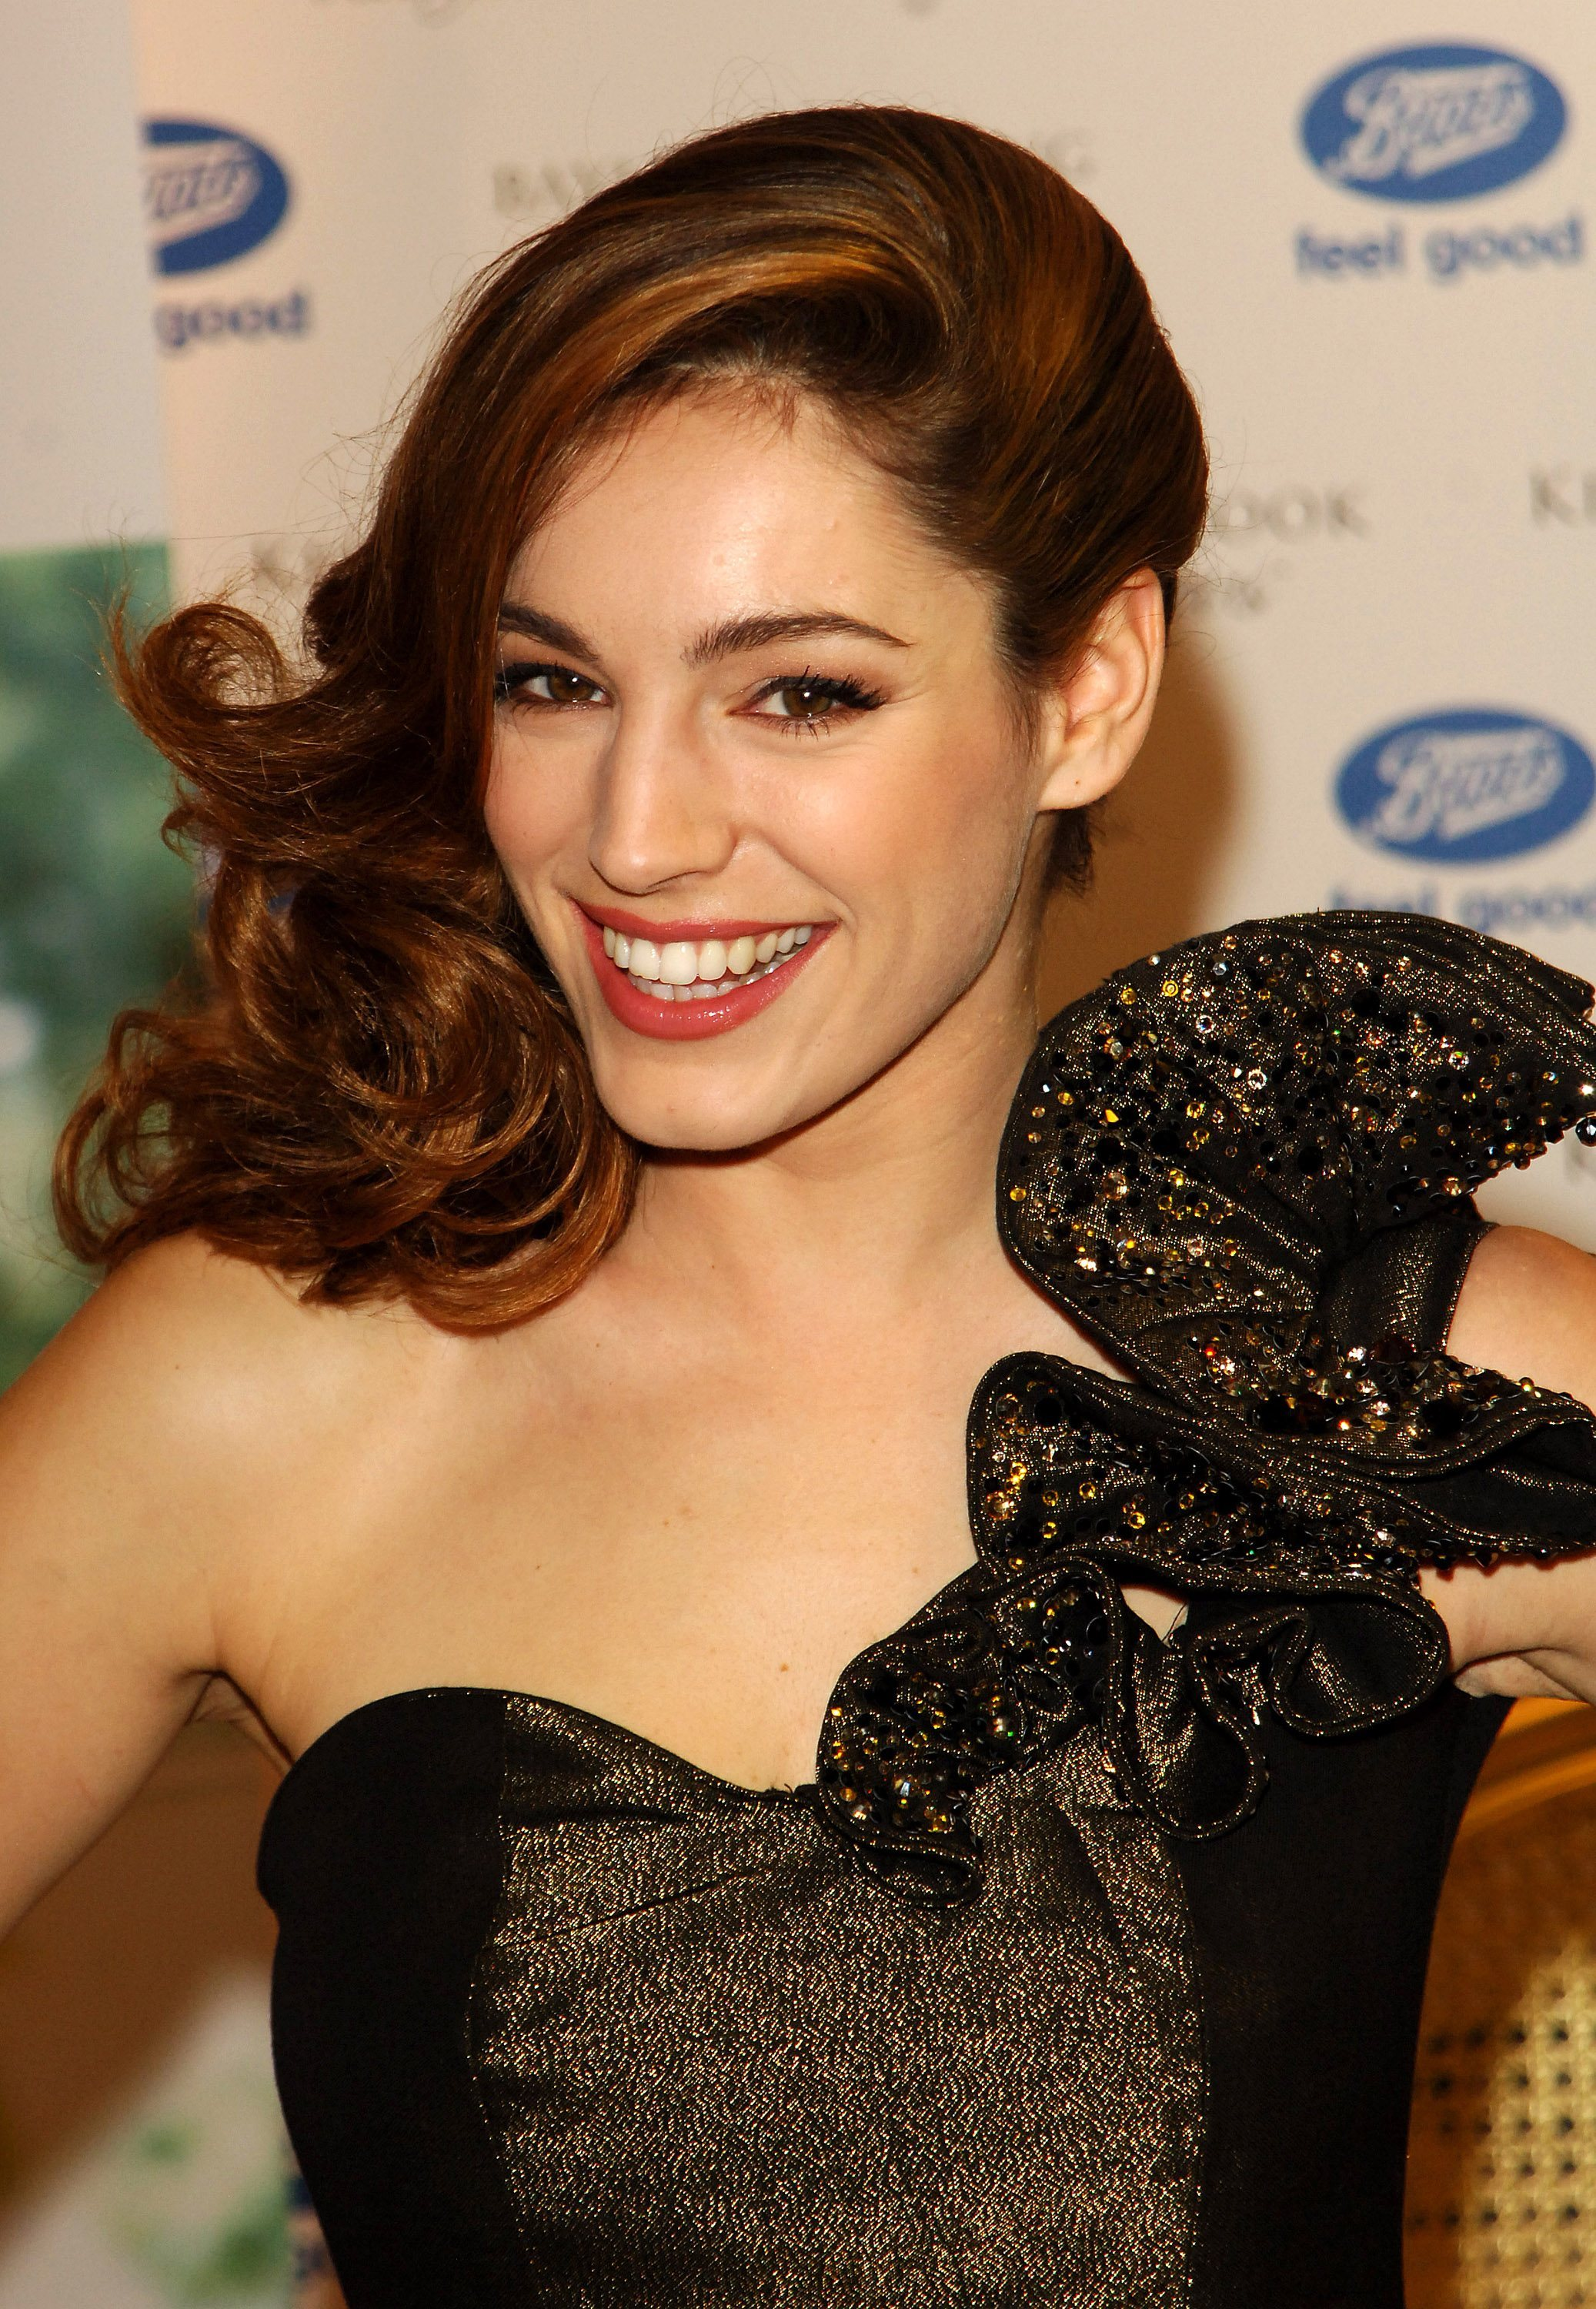 latest images of actresses kelly brook pictures